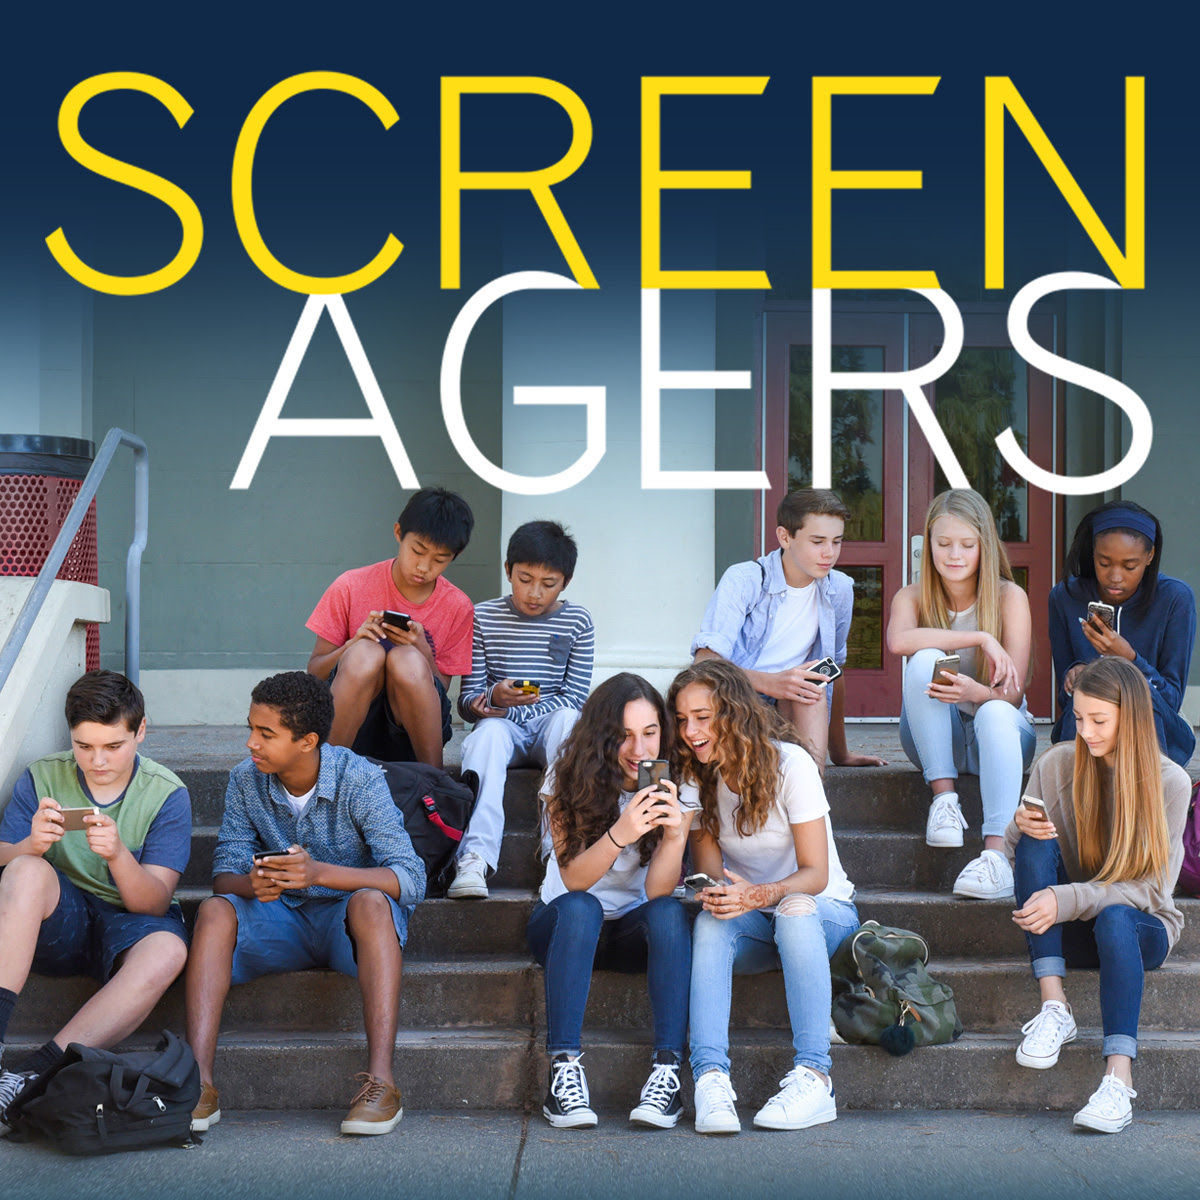 Screenagers Film Presented By Blossoming Hill Montessori School